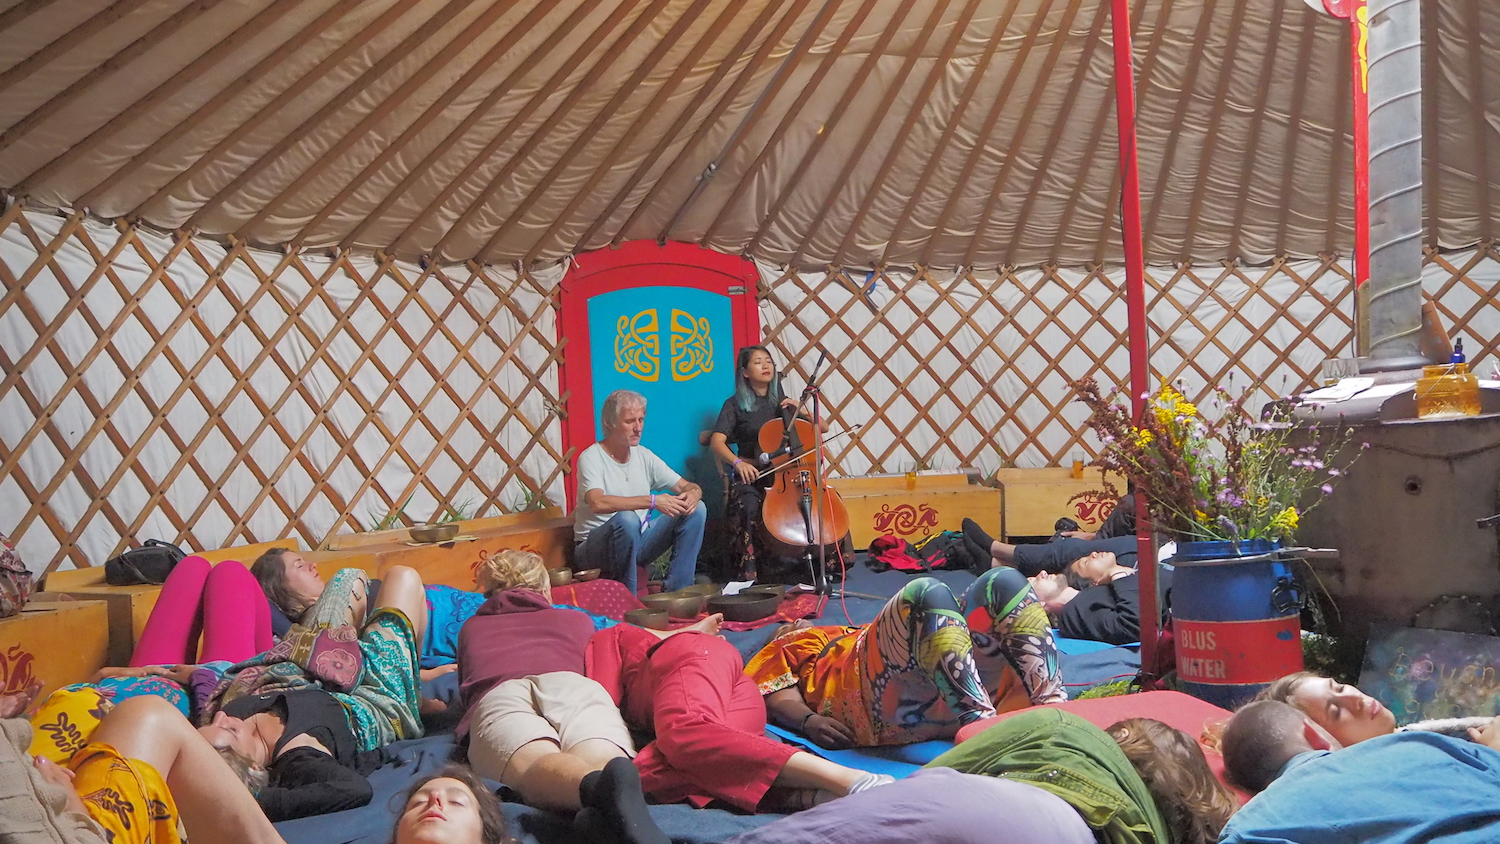 Cello Meditation in a Yurt at Landjuweel Festival, Ruigoord